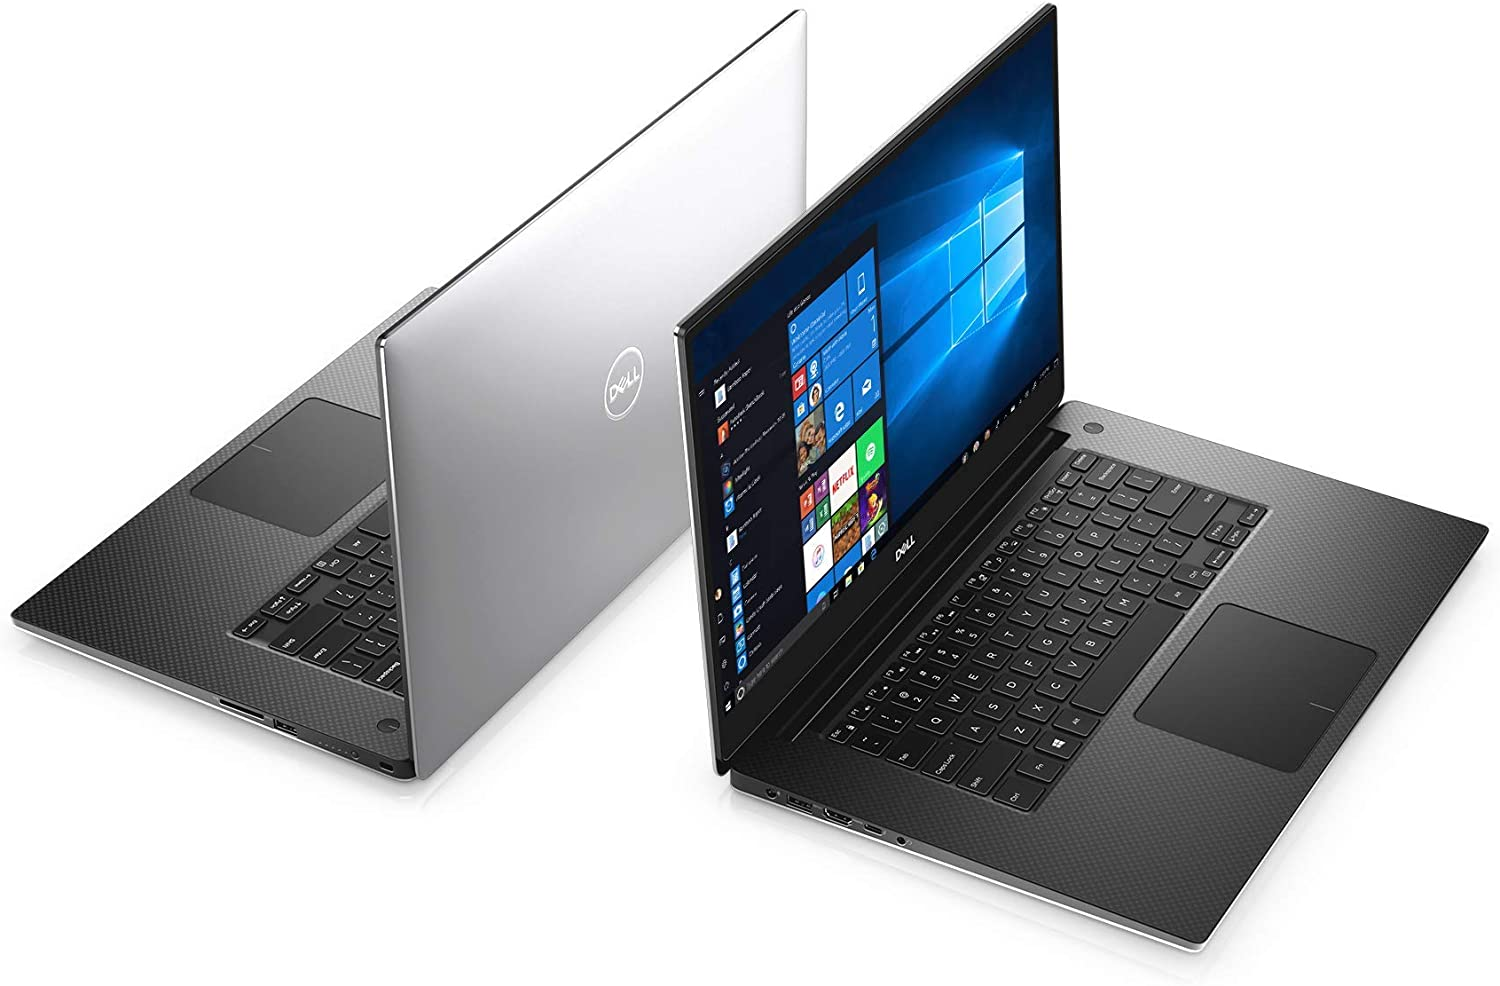 "Dell XPS 15 7590, XPS7590-7572SLV-PUS, 9th Gen Intel Core i7-9750H, 15.6"" 4K UHD (3840 X 2160) OLED, 16GB DDR4-2666MHz, 256GB SSD, NVIDIA GeForce GTX 1650 4GB GDDR5 (Renewed)"